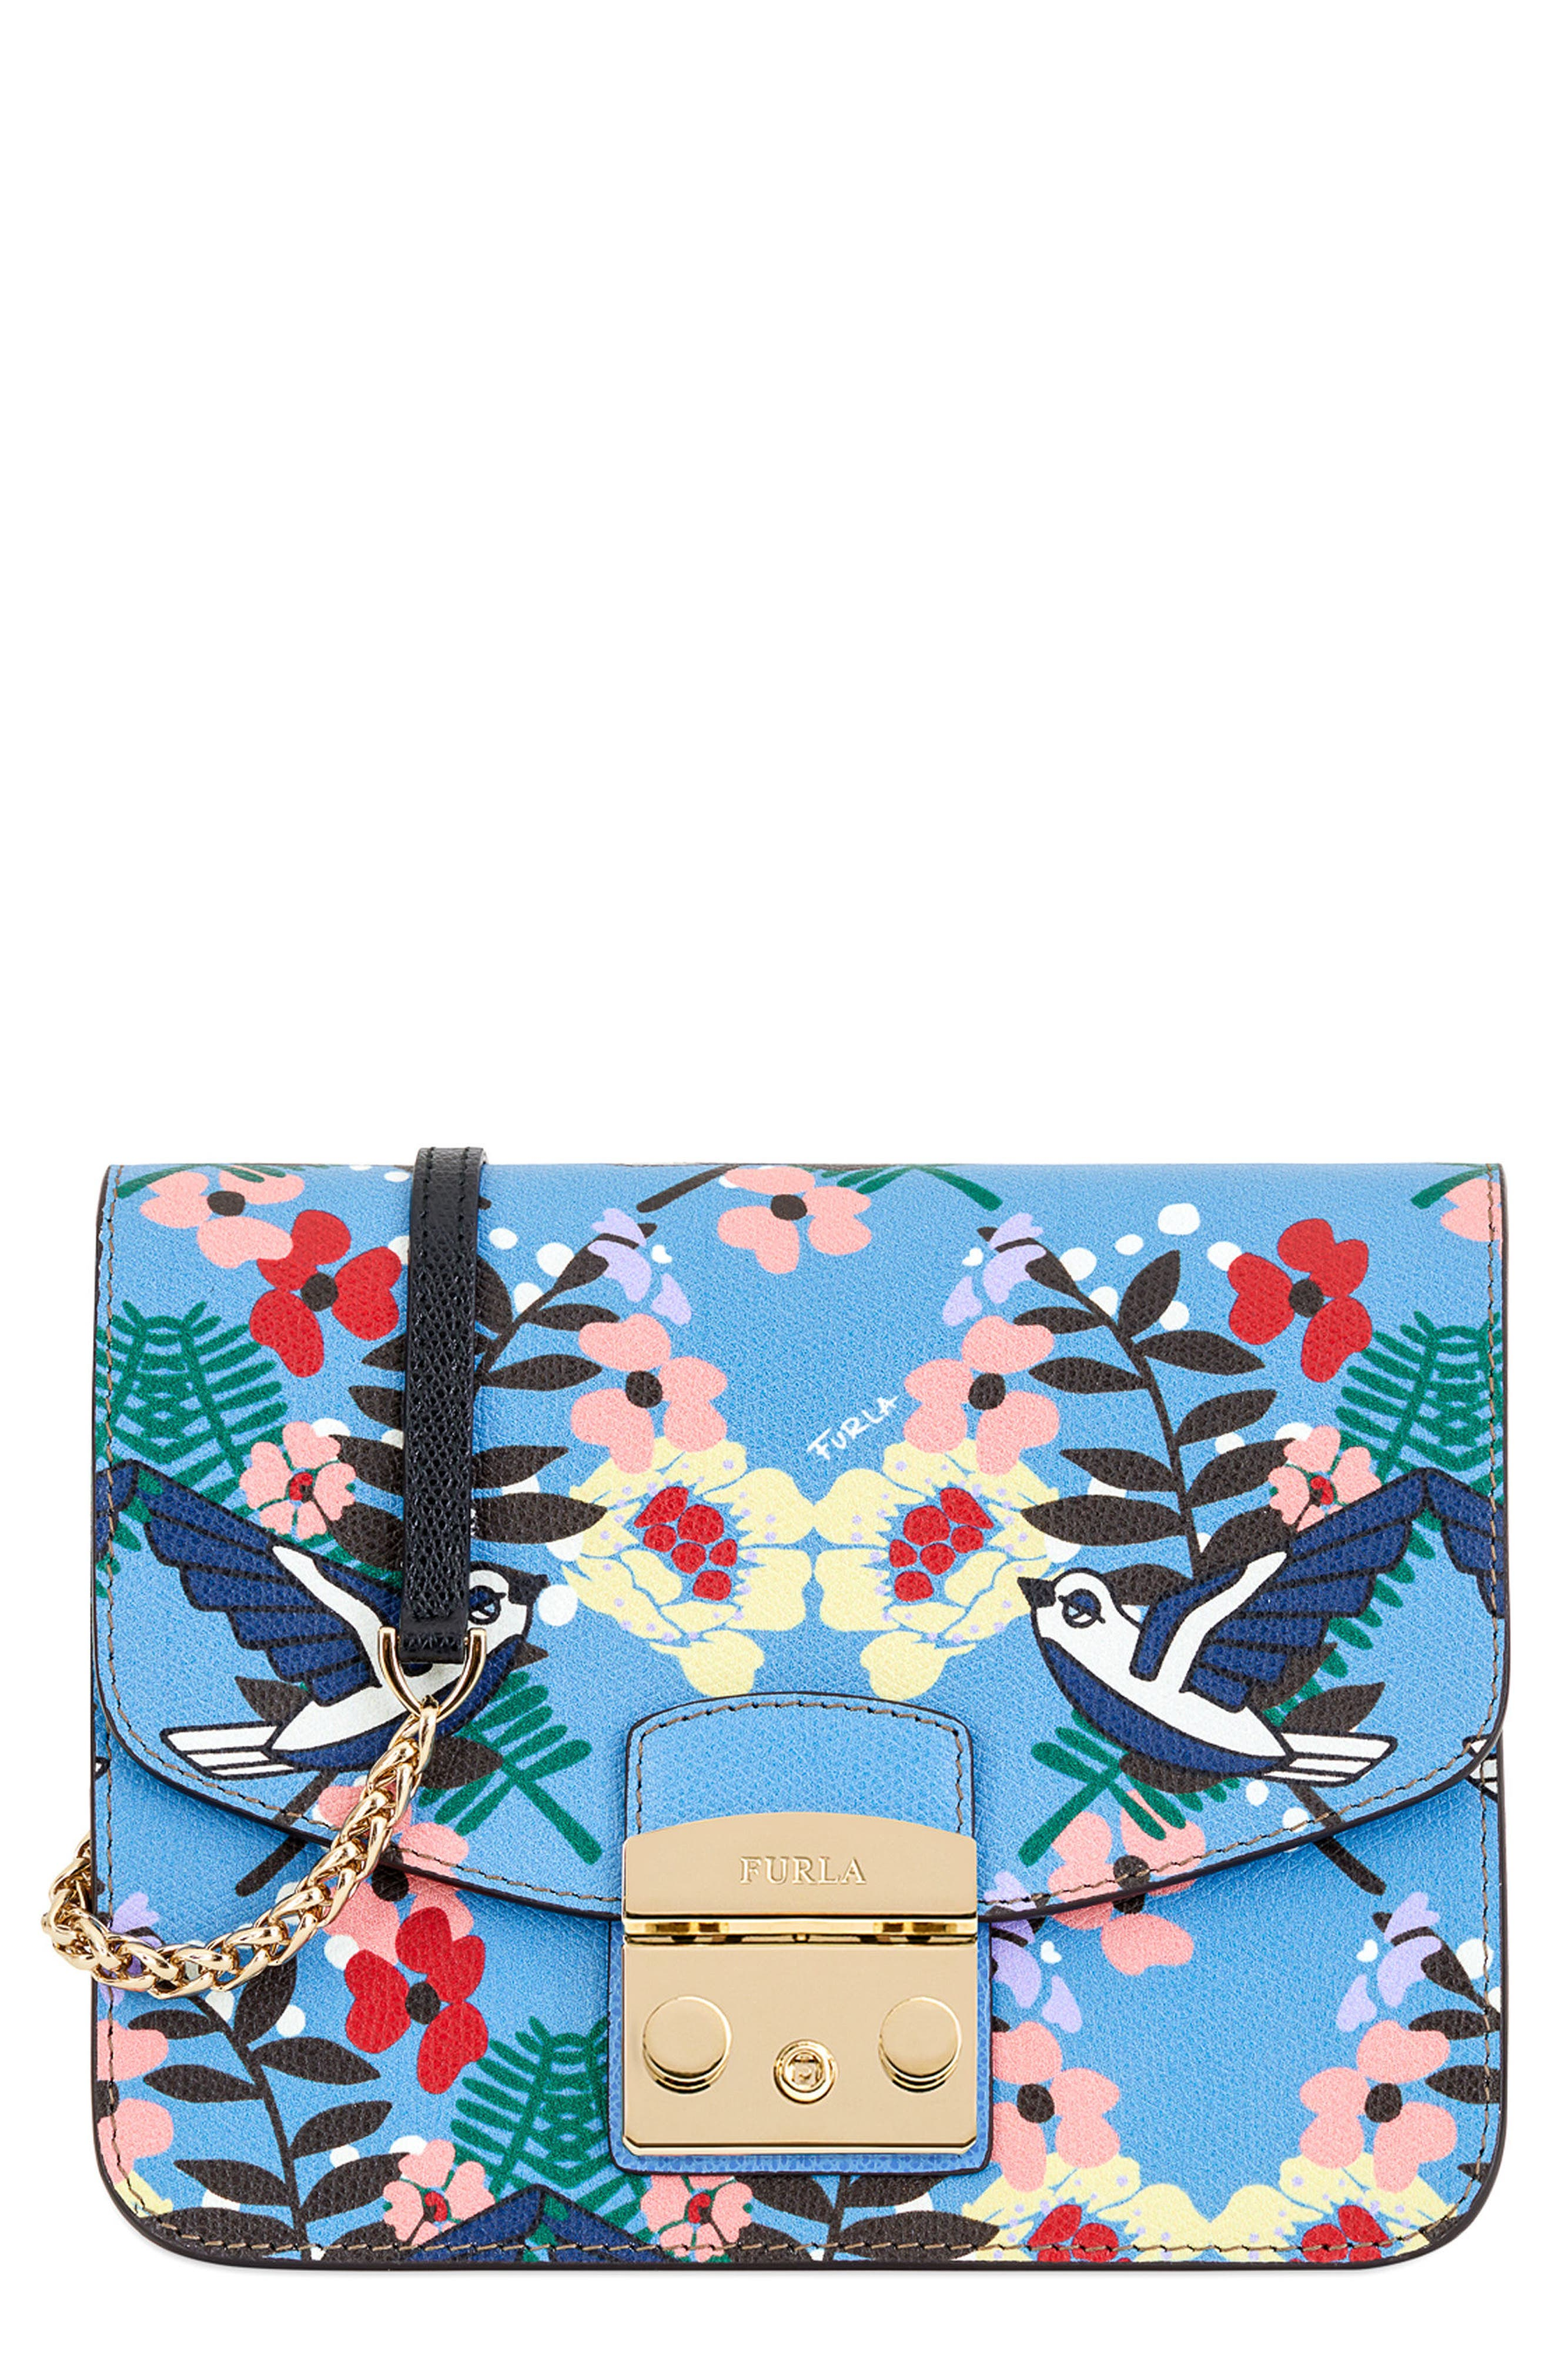 Small Metropolis Print Leather Crossbody Bag,                         Main,                         color,